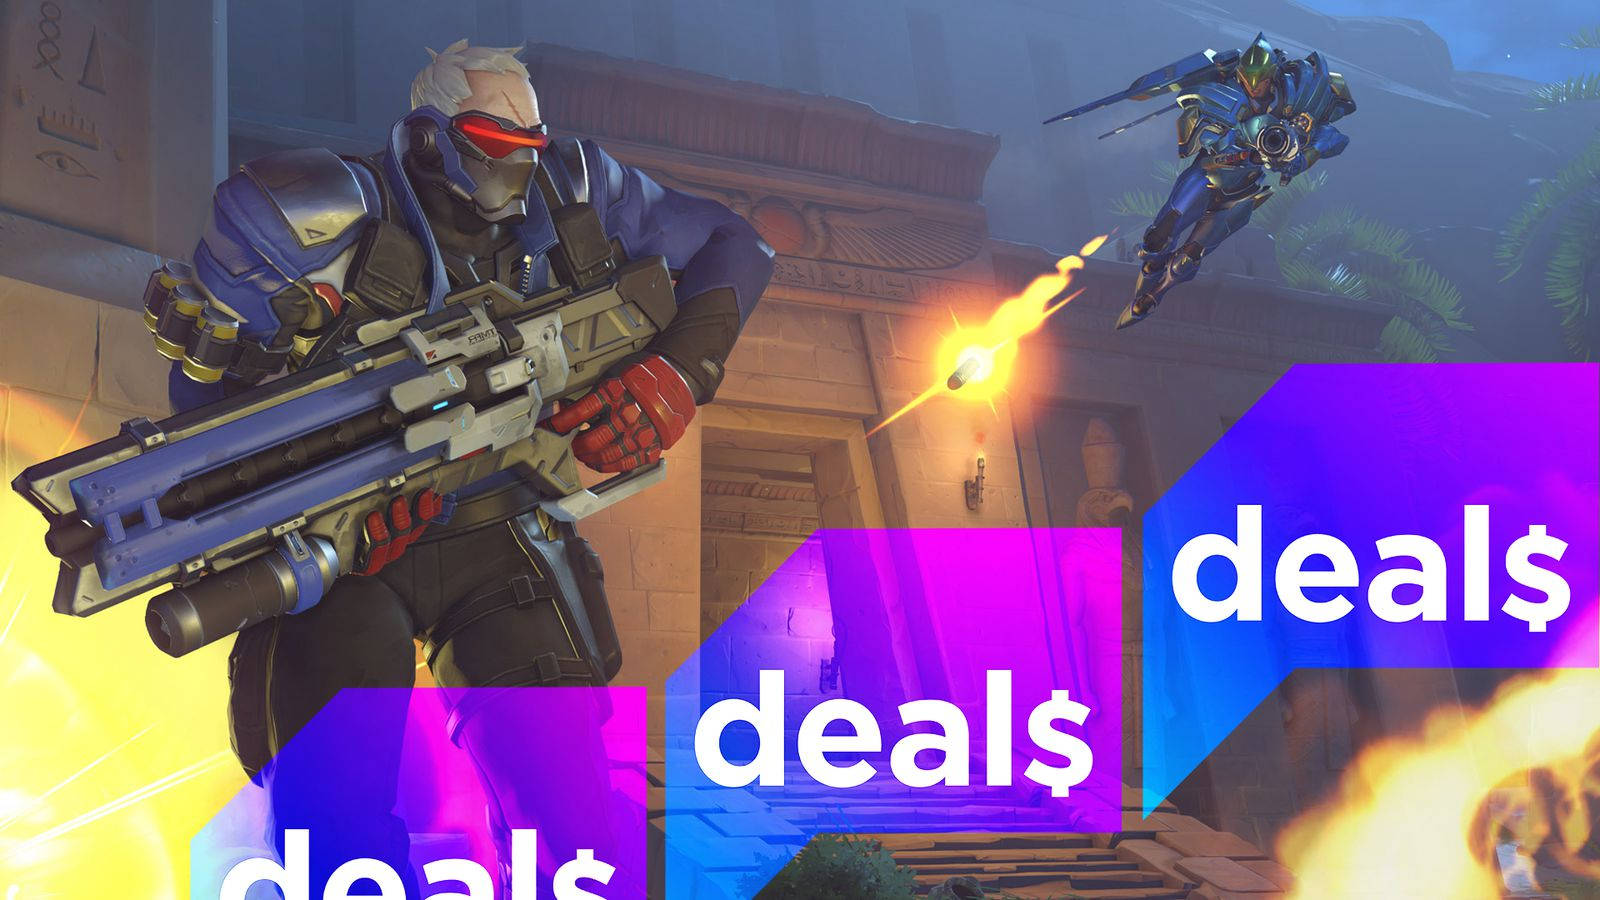 The best gaming deals of Memorial Day 2017 include discounts on Overwatch